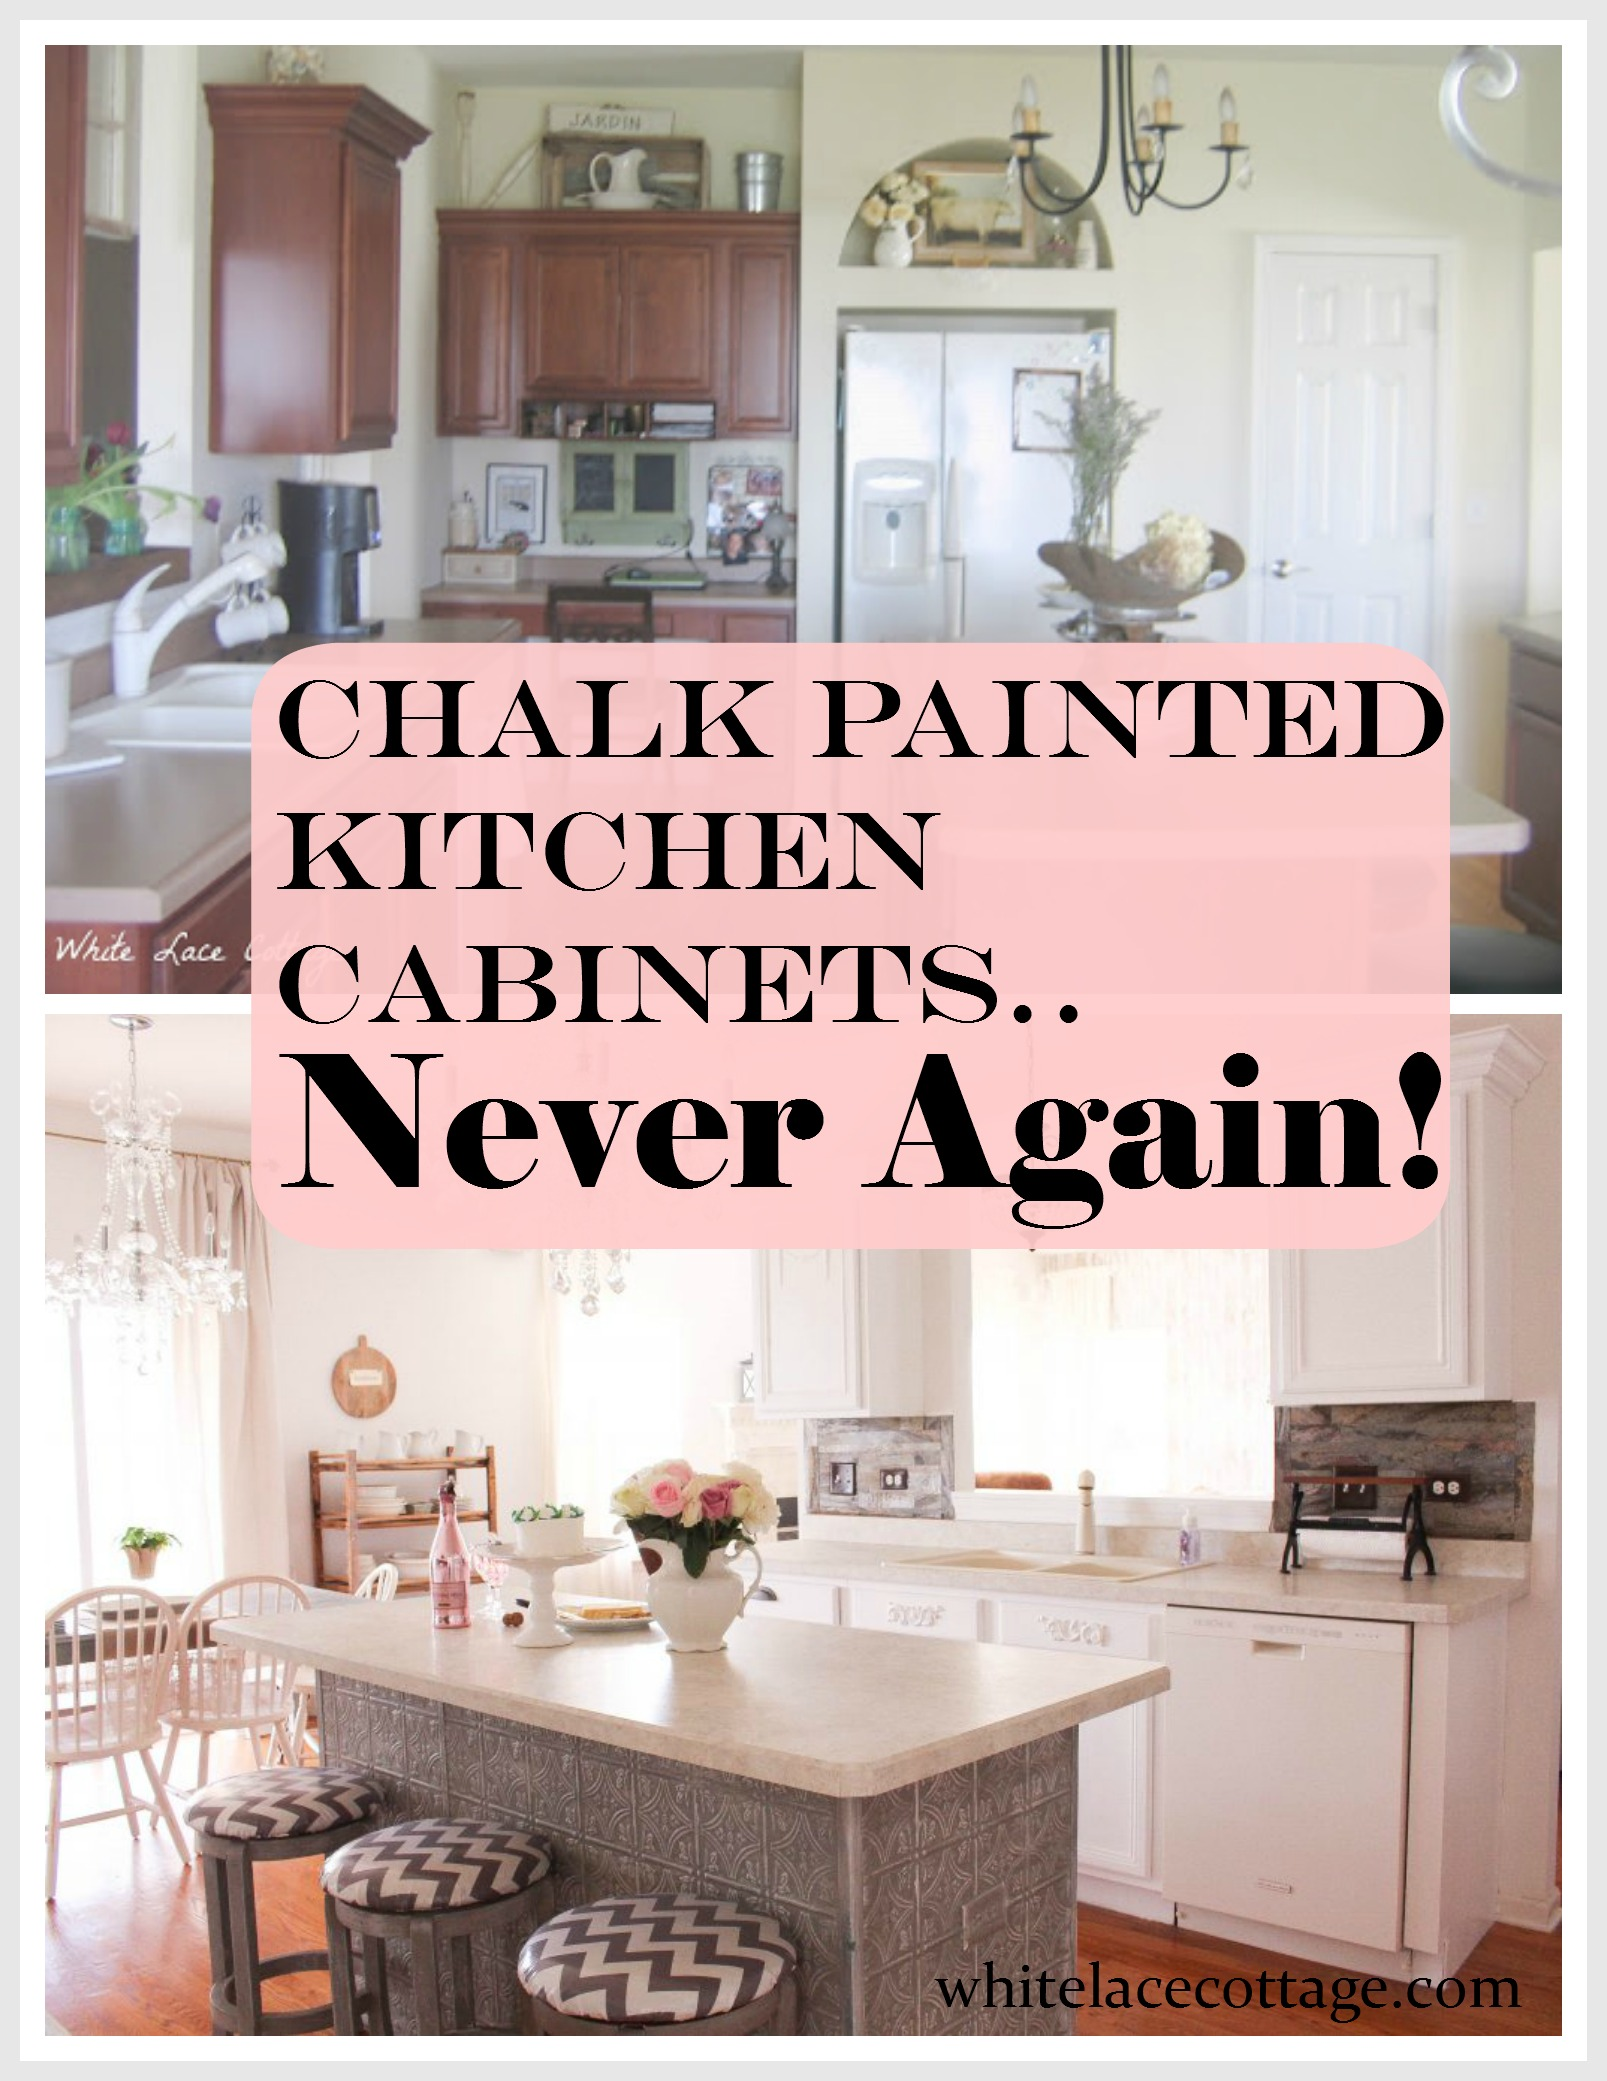 Diy Kitchen Cabinets With Chalk Paint